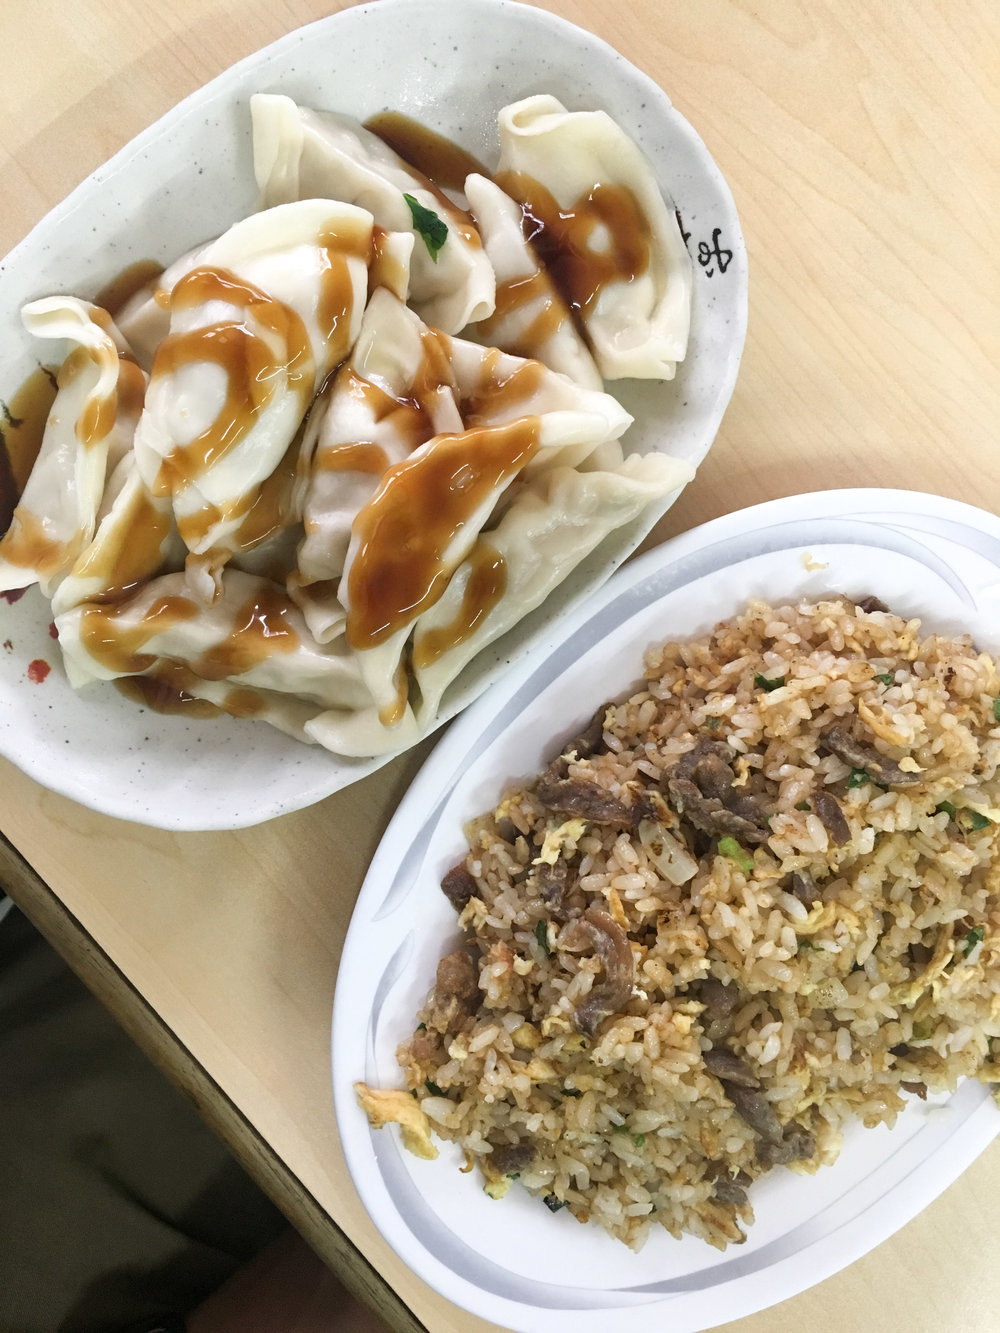 Dumplings & Fried Rice from a local restaurant